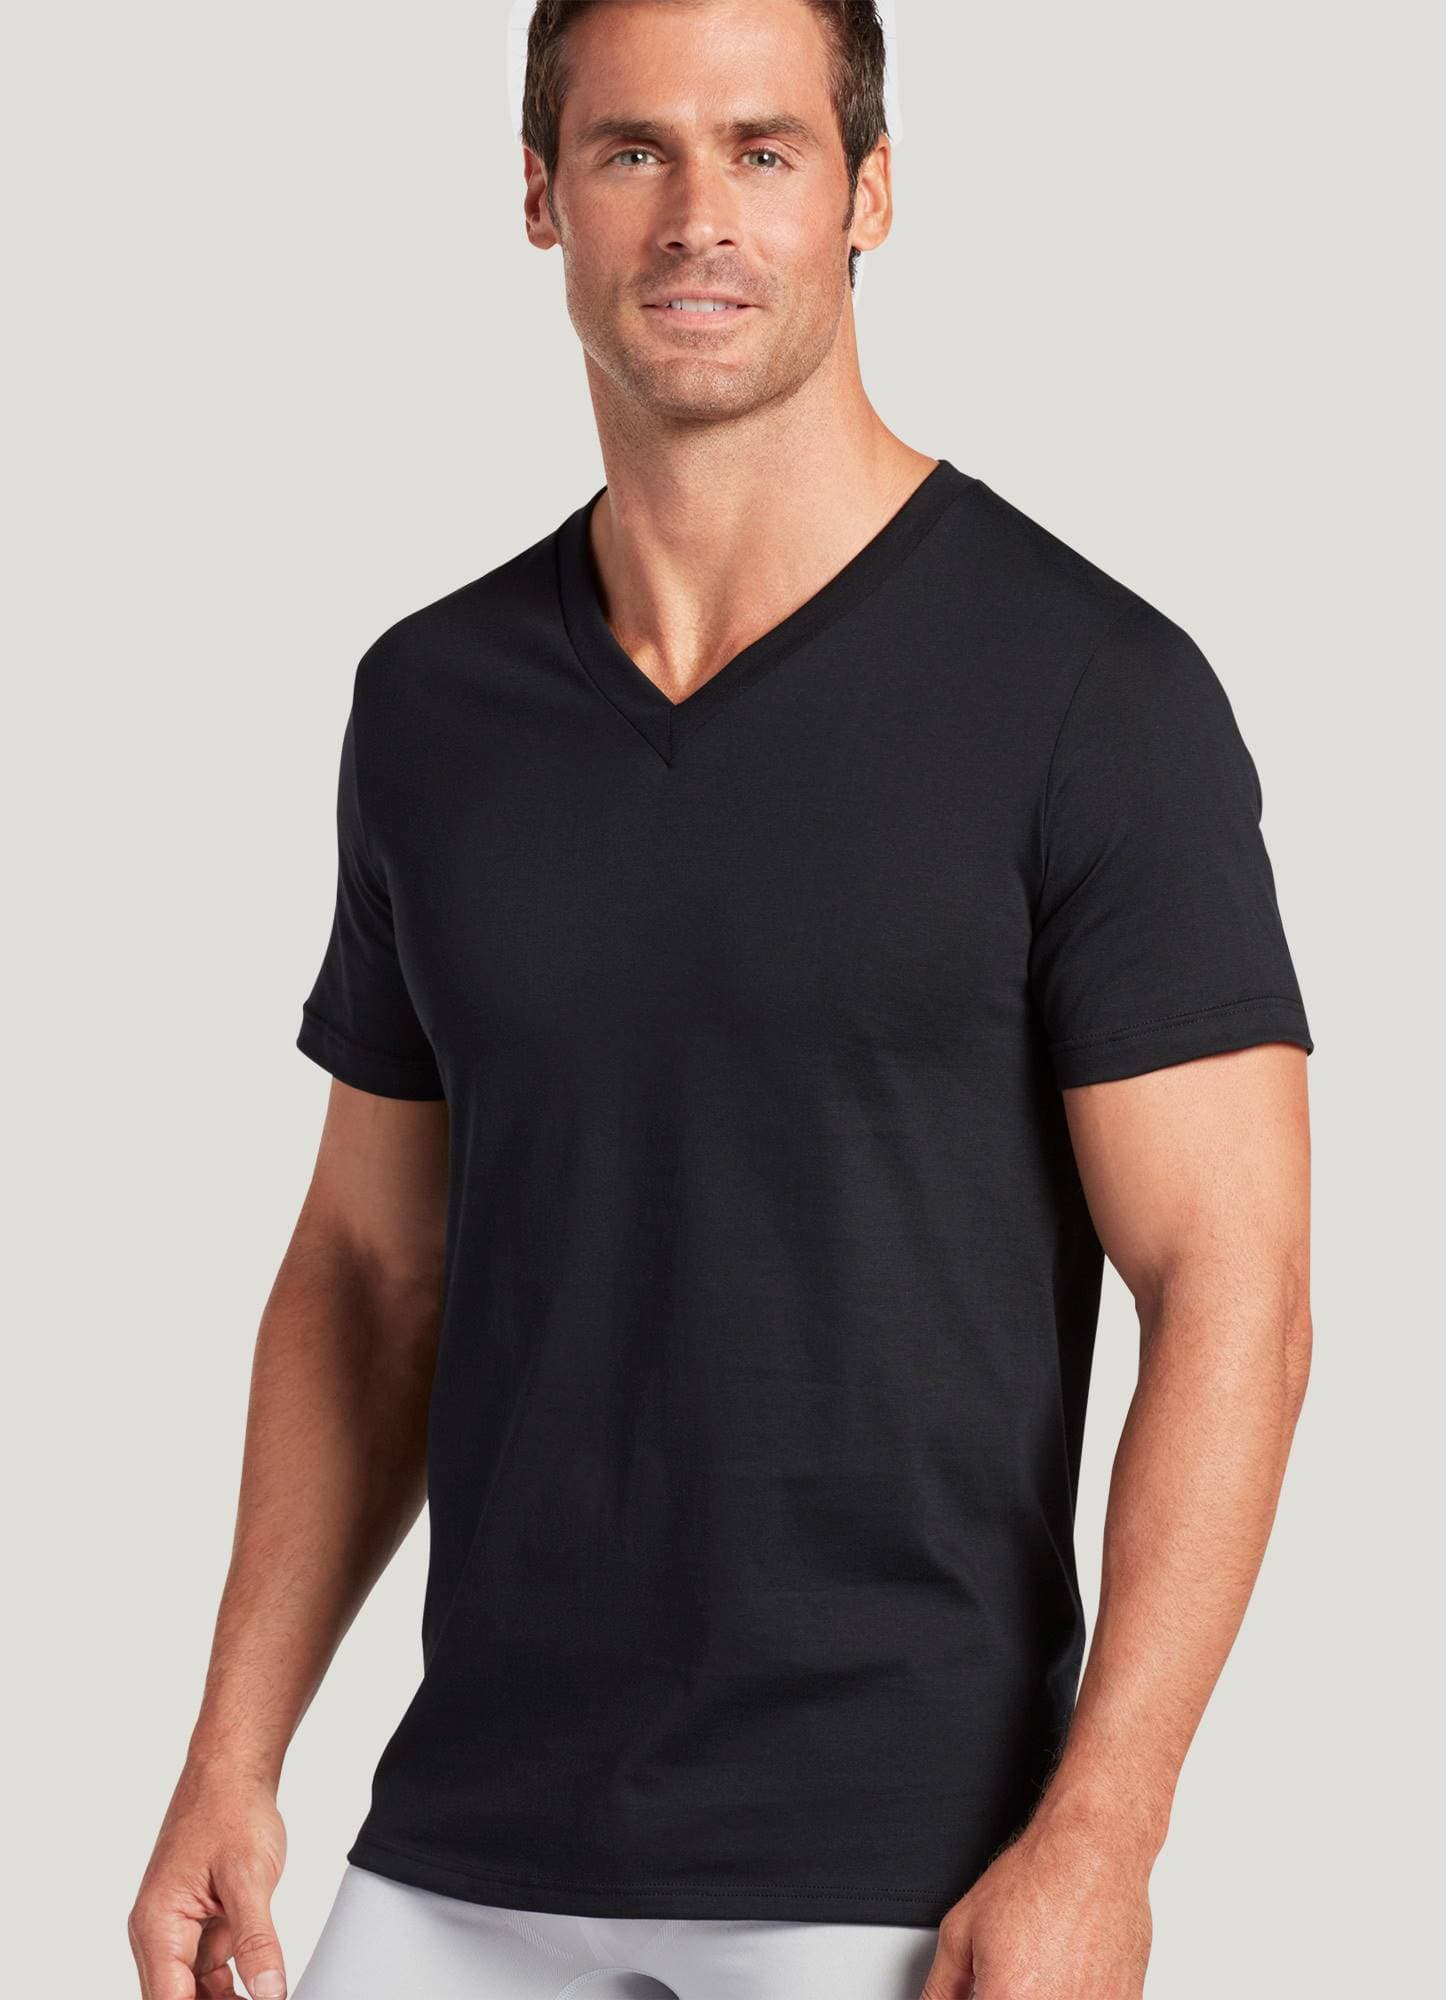 Black t shirts v neck - 1